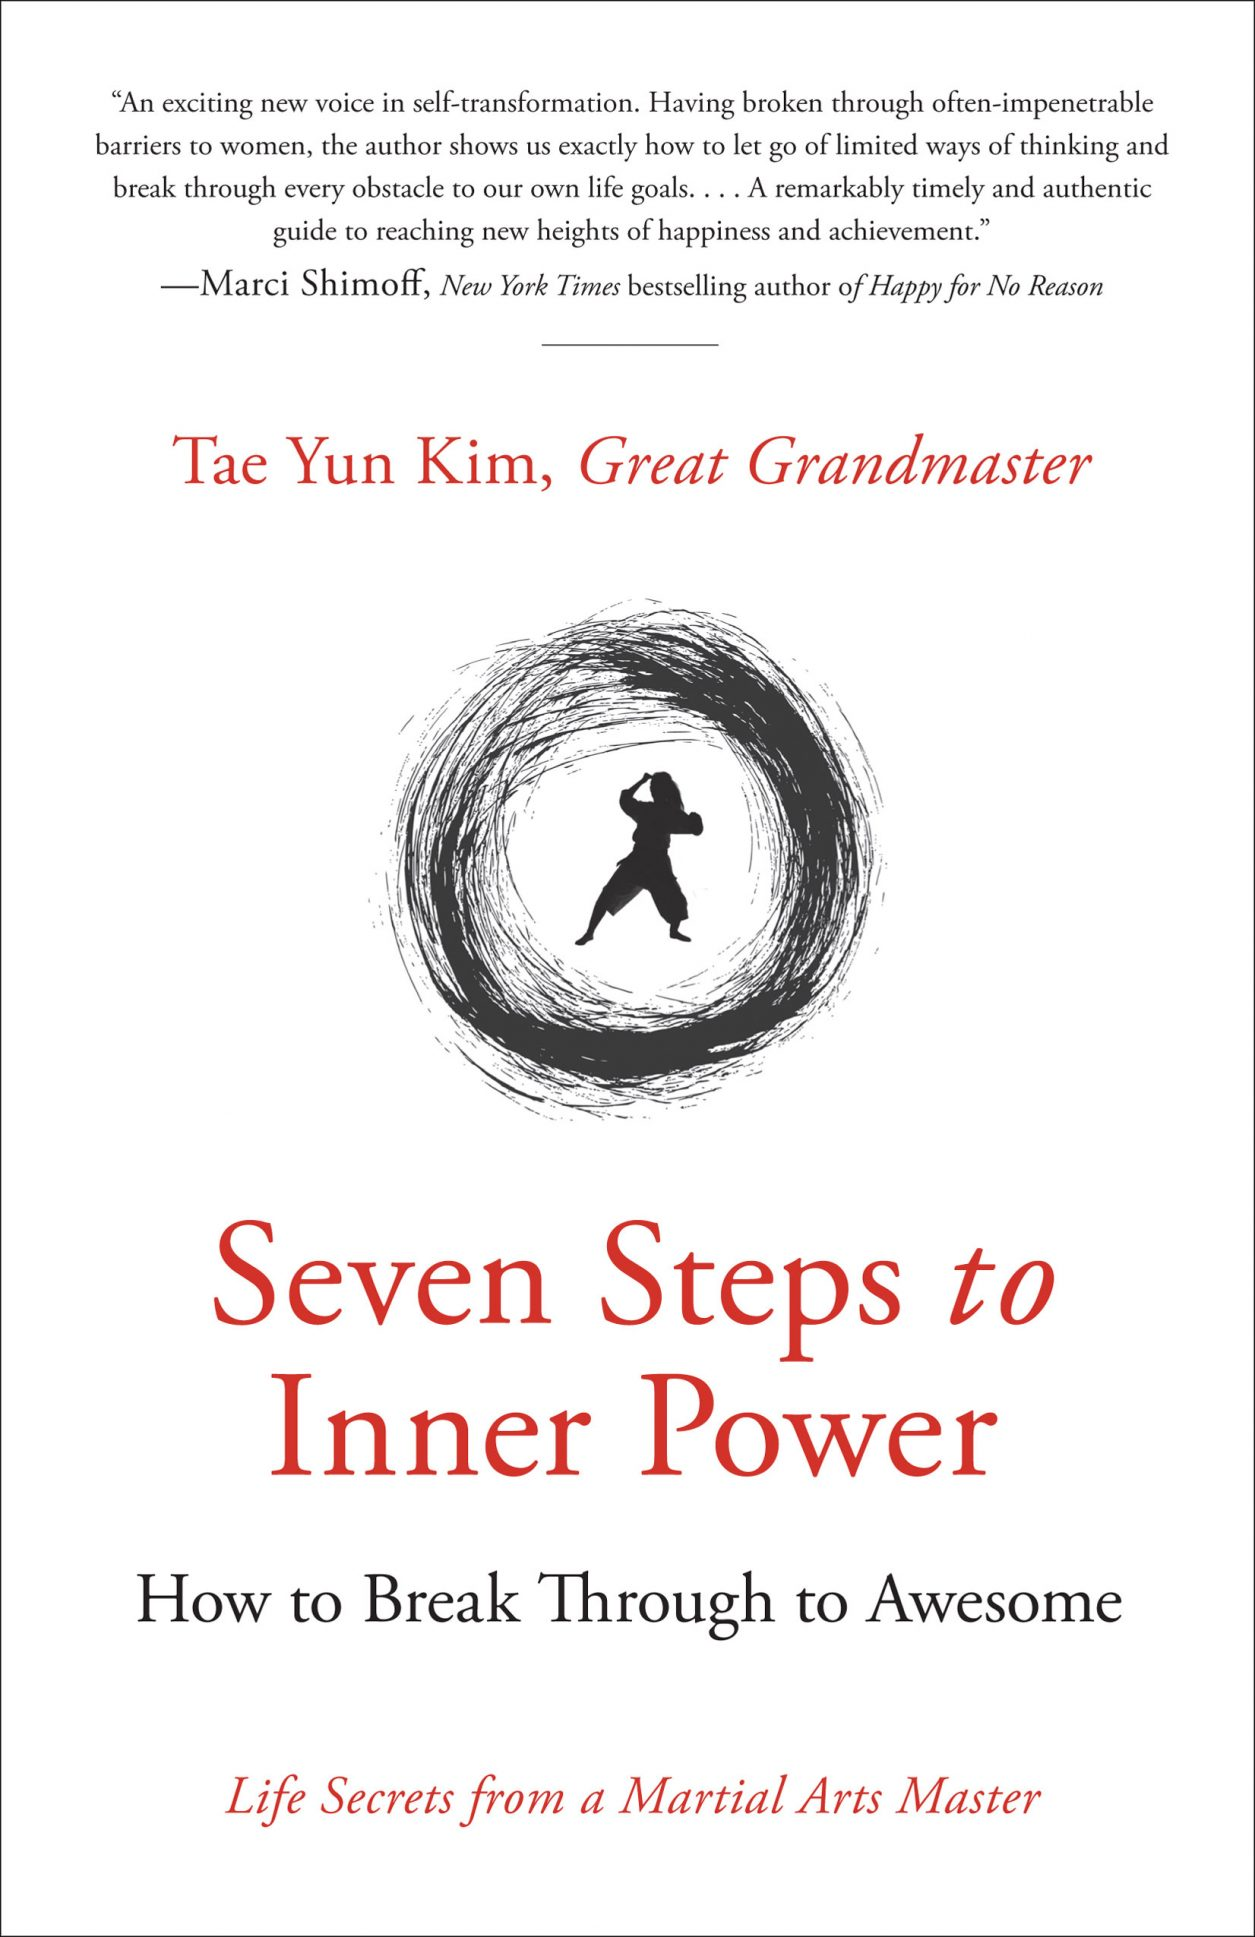 Seven Steps to Inner Power by Tae Yun Kim